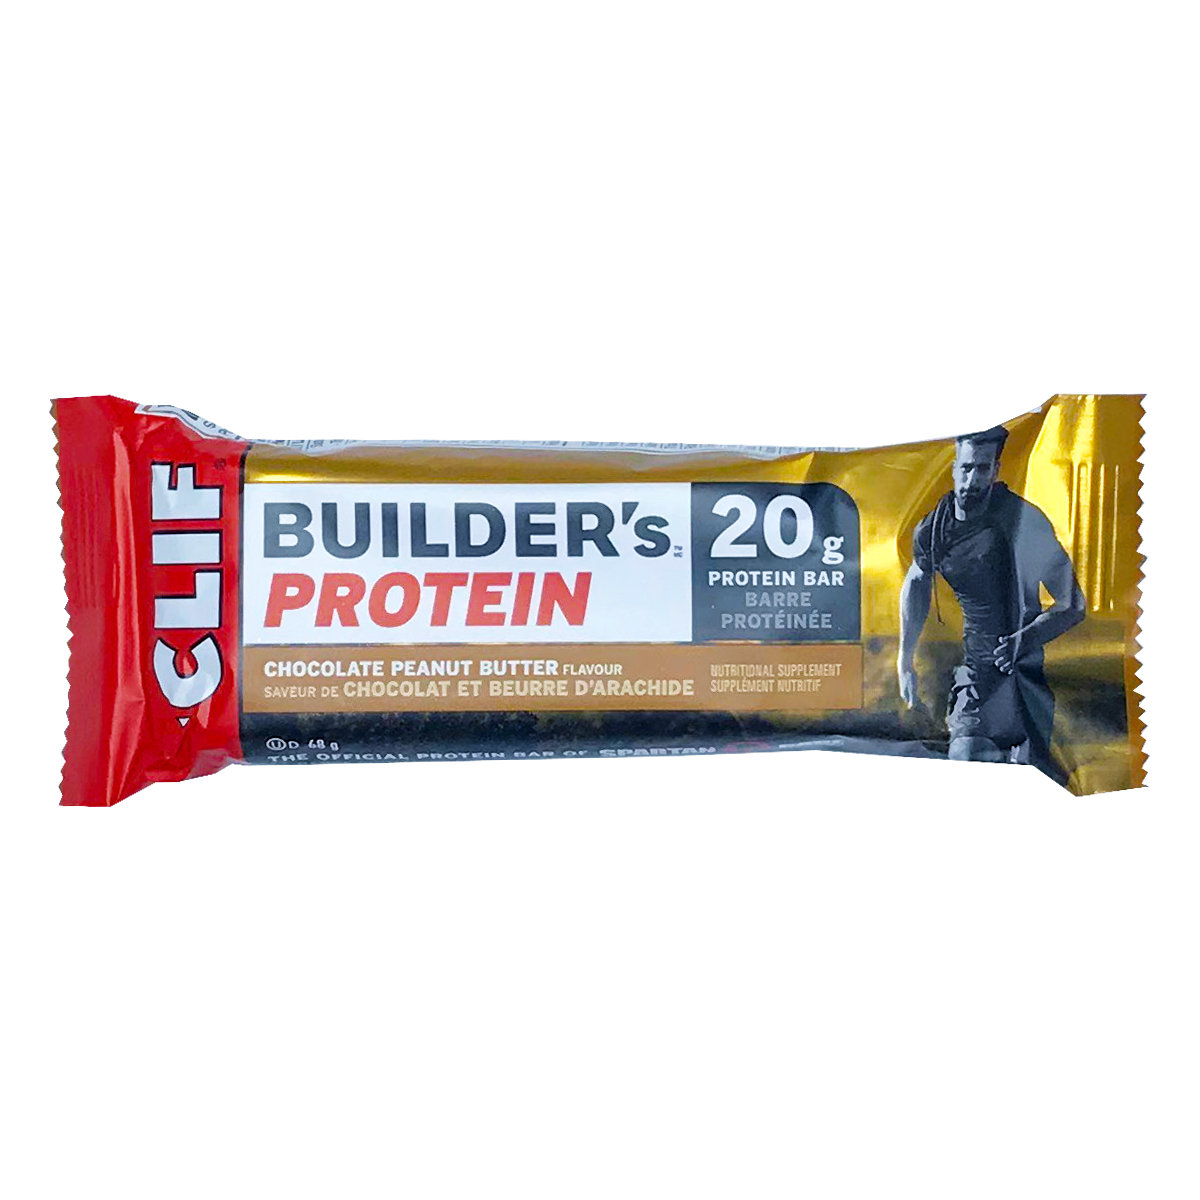 Protein Bar (Chocolate Peanut Butter)